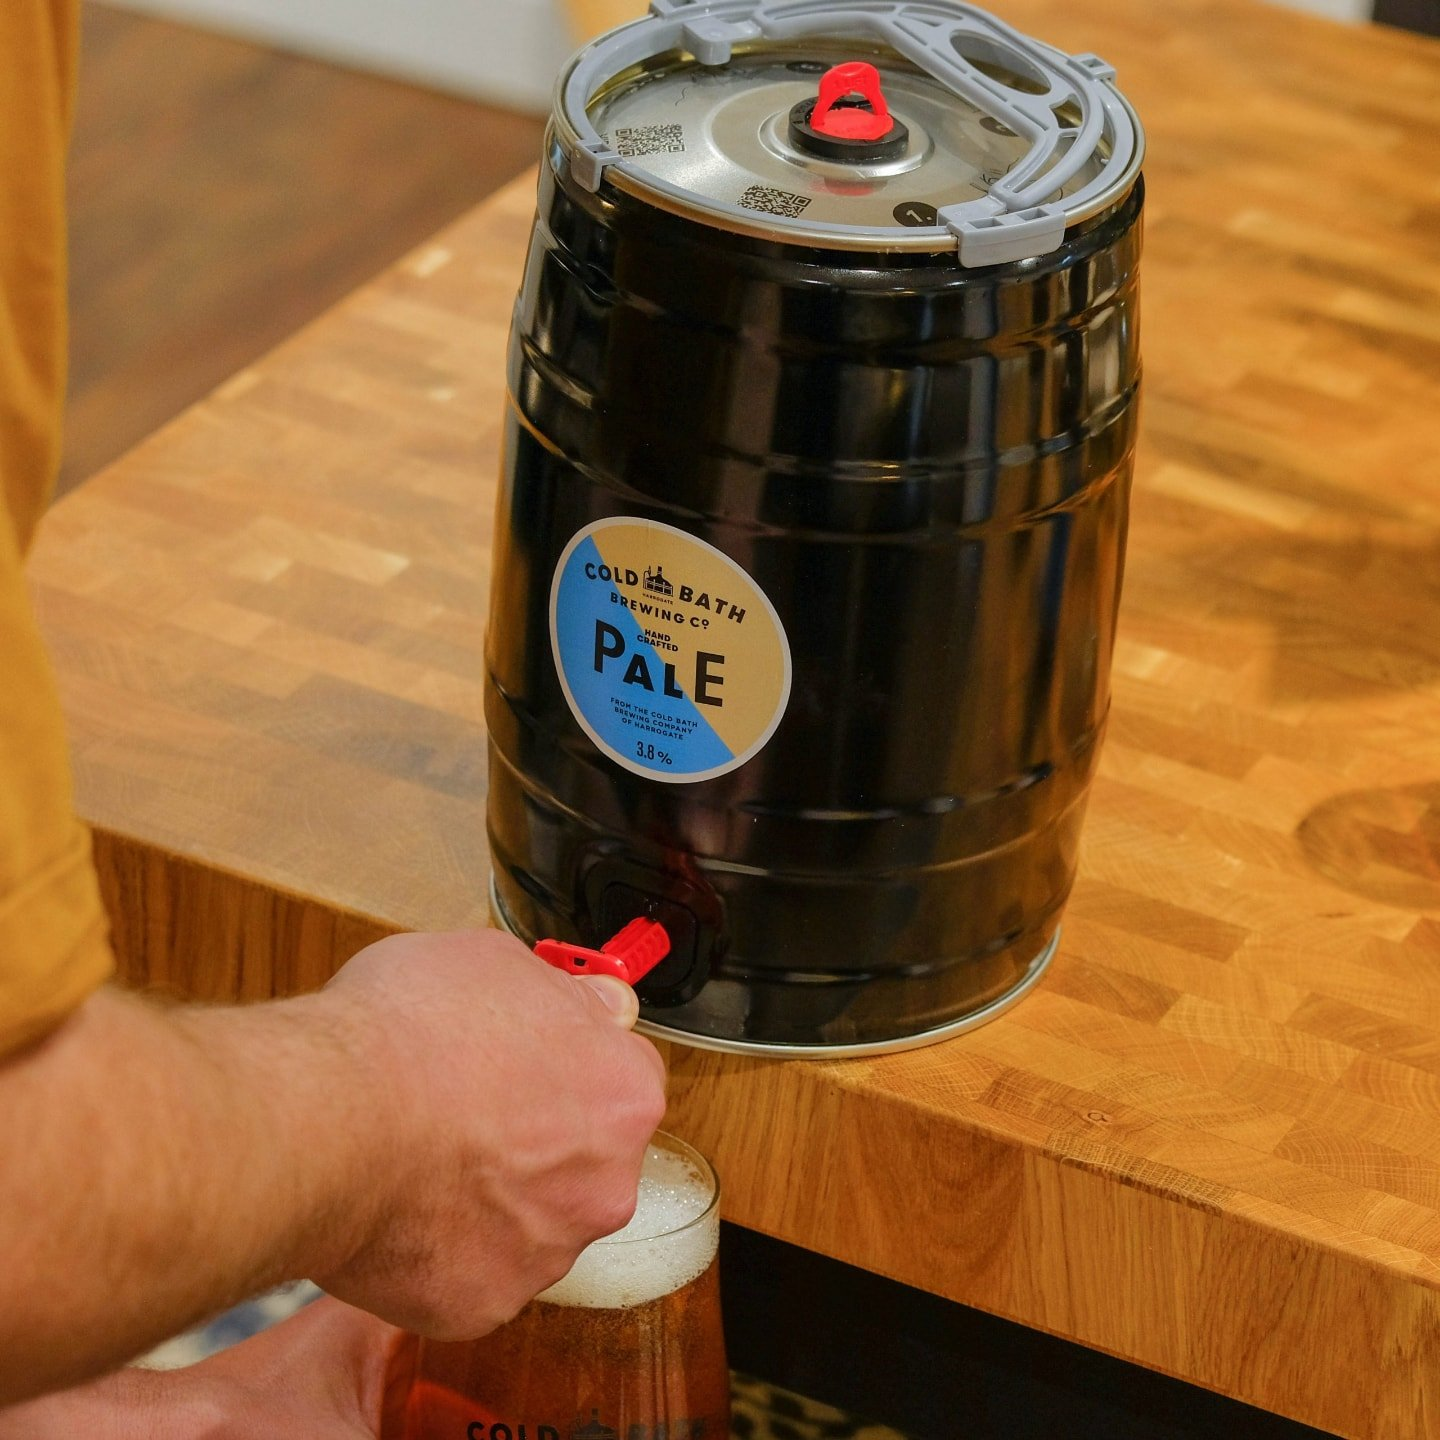 Cold Bath Brewing Co Hand Crafted Pale Mini-Keg